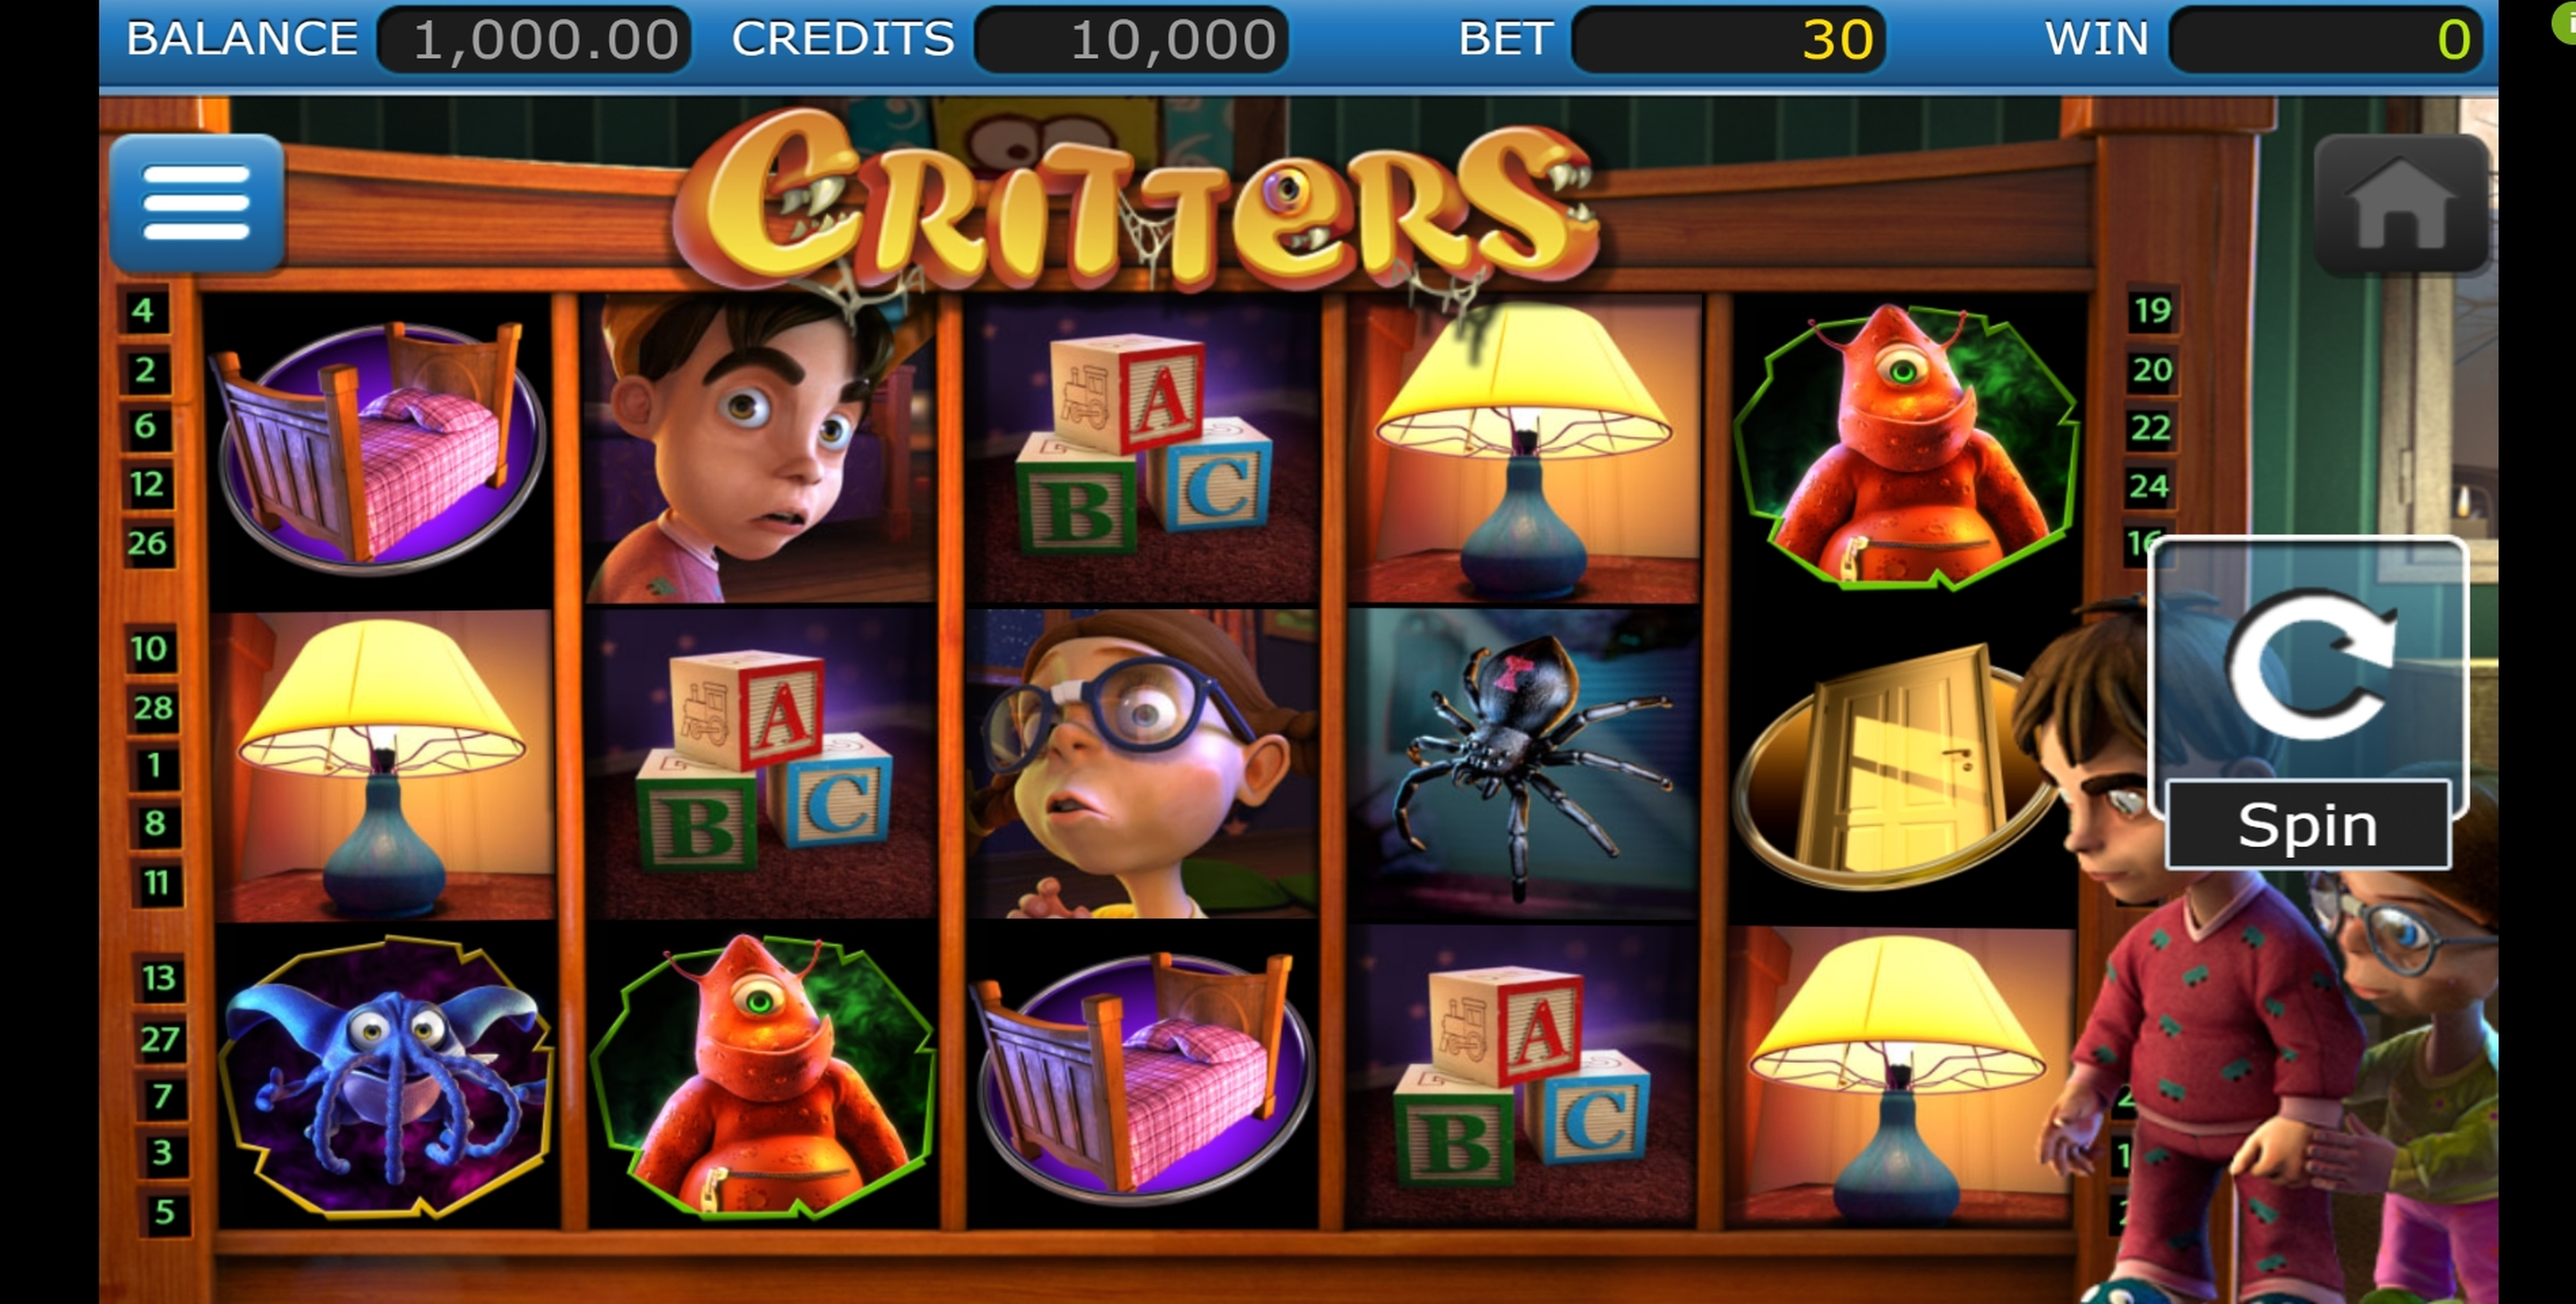 Reels in The Critters Slot Game by Nucleus Gaming